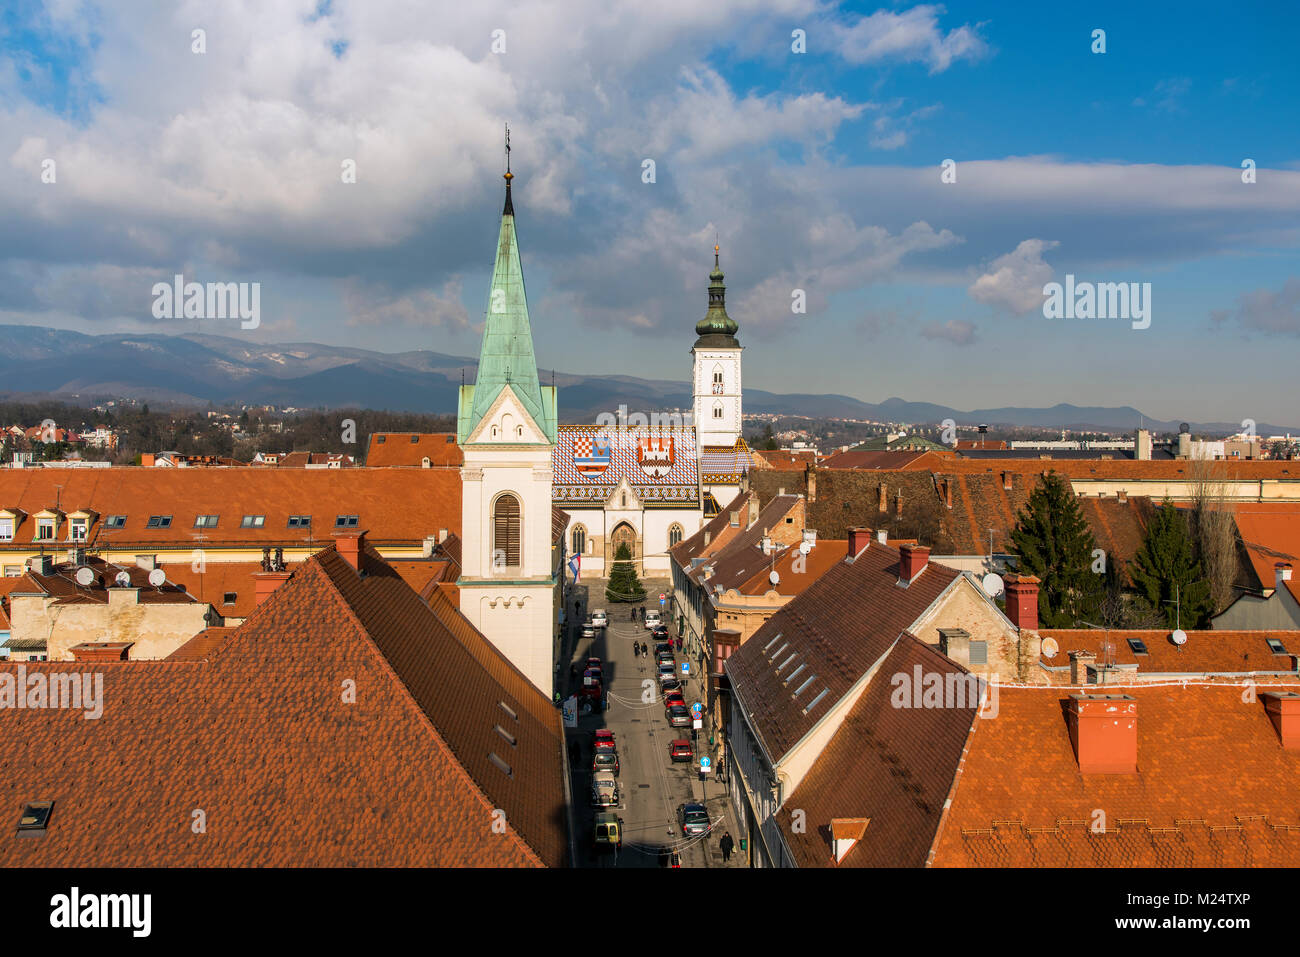 Old town skyline with Church of St. Mark, Zagreb, Croatia - Stock Image